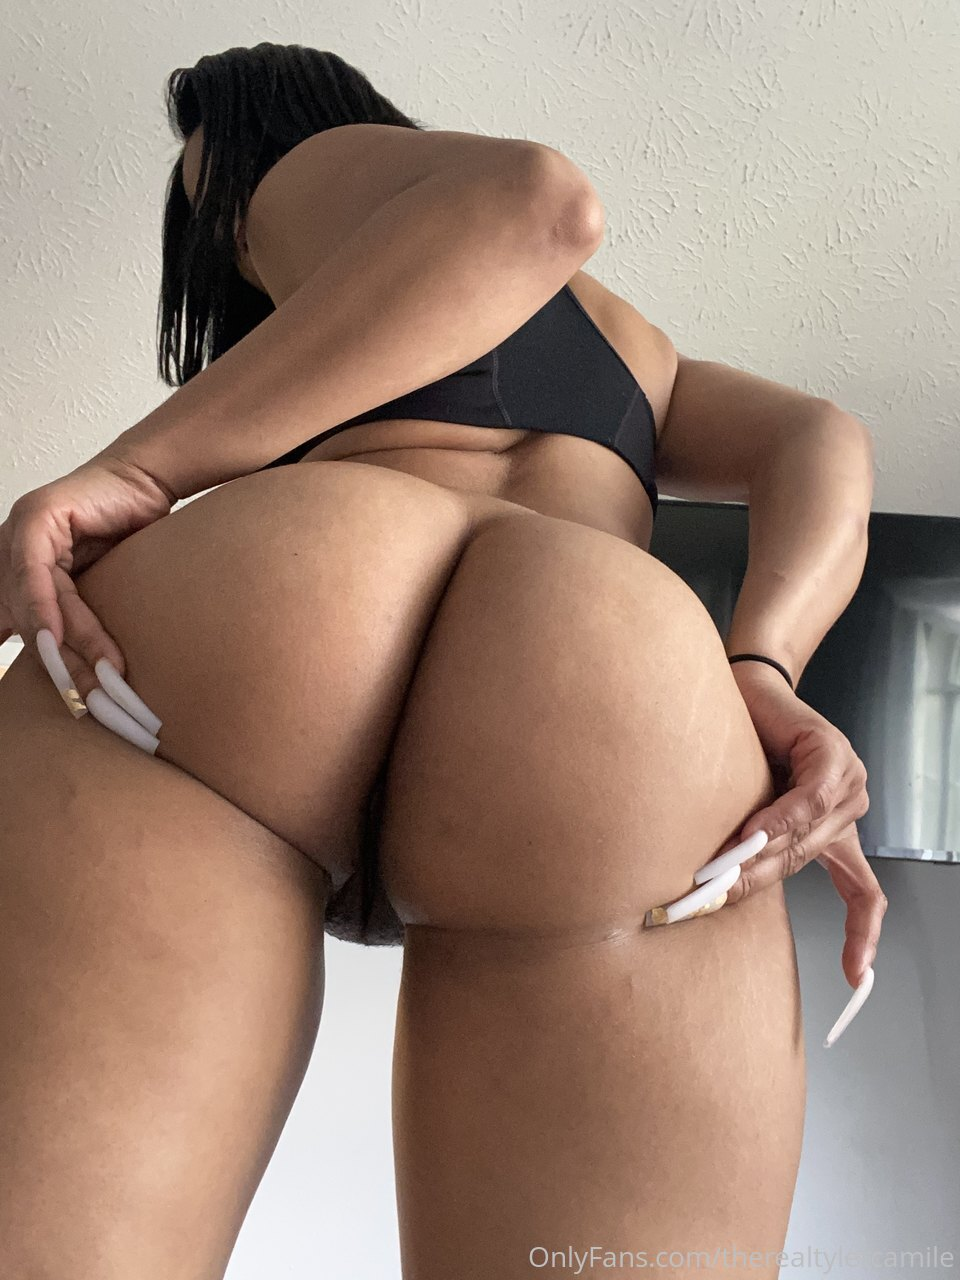 Nyny Irene Porn OnlyFans Leaked Nudes 72